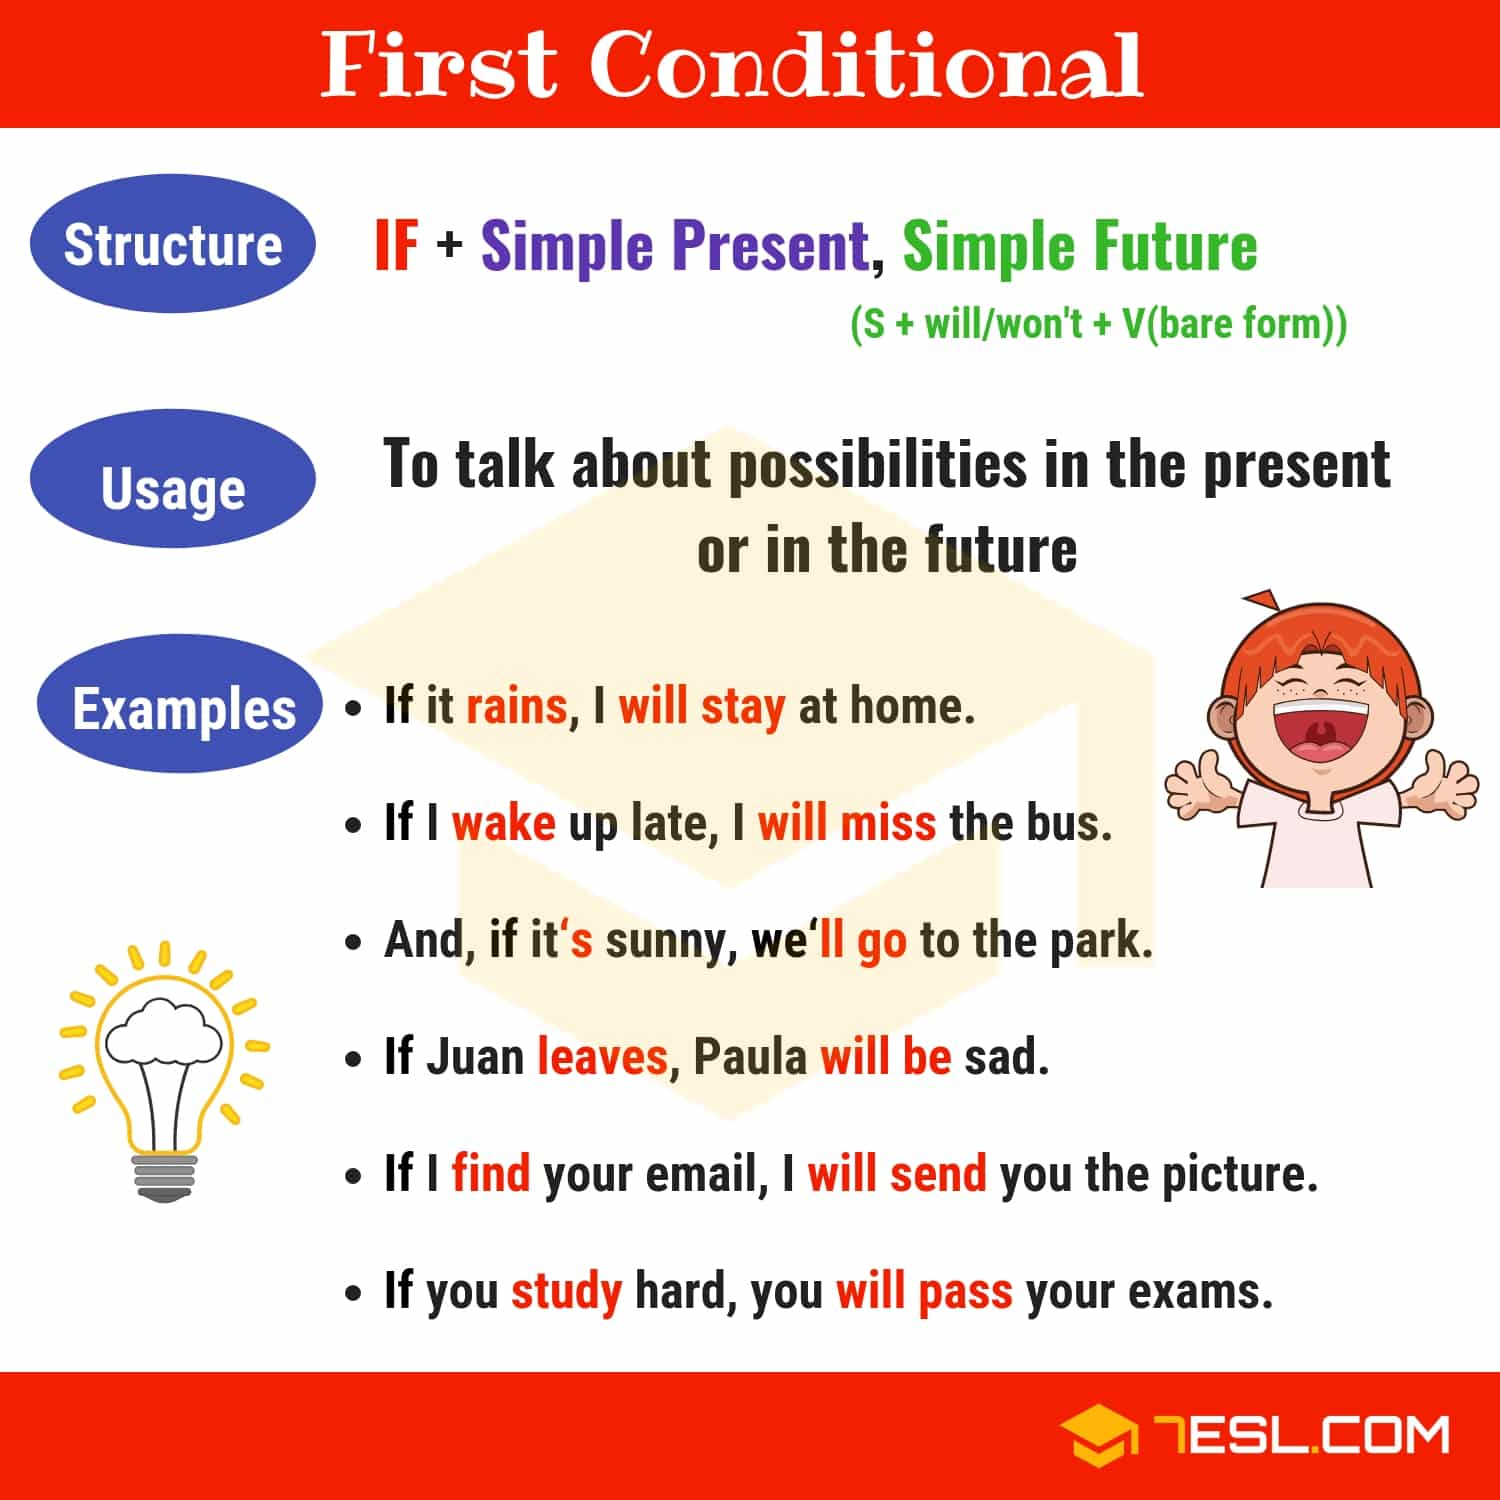 First Conditionals